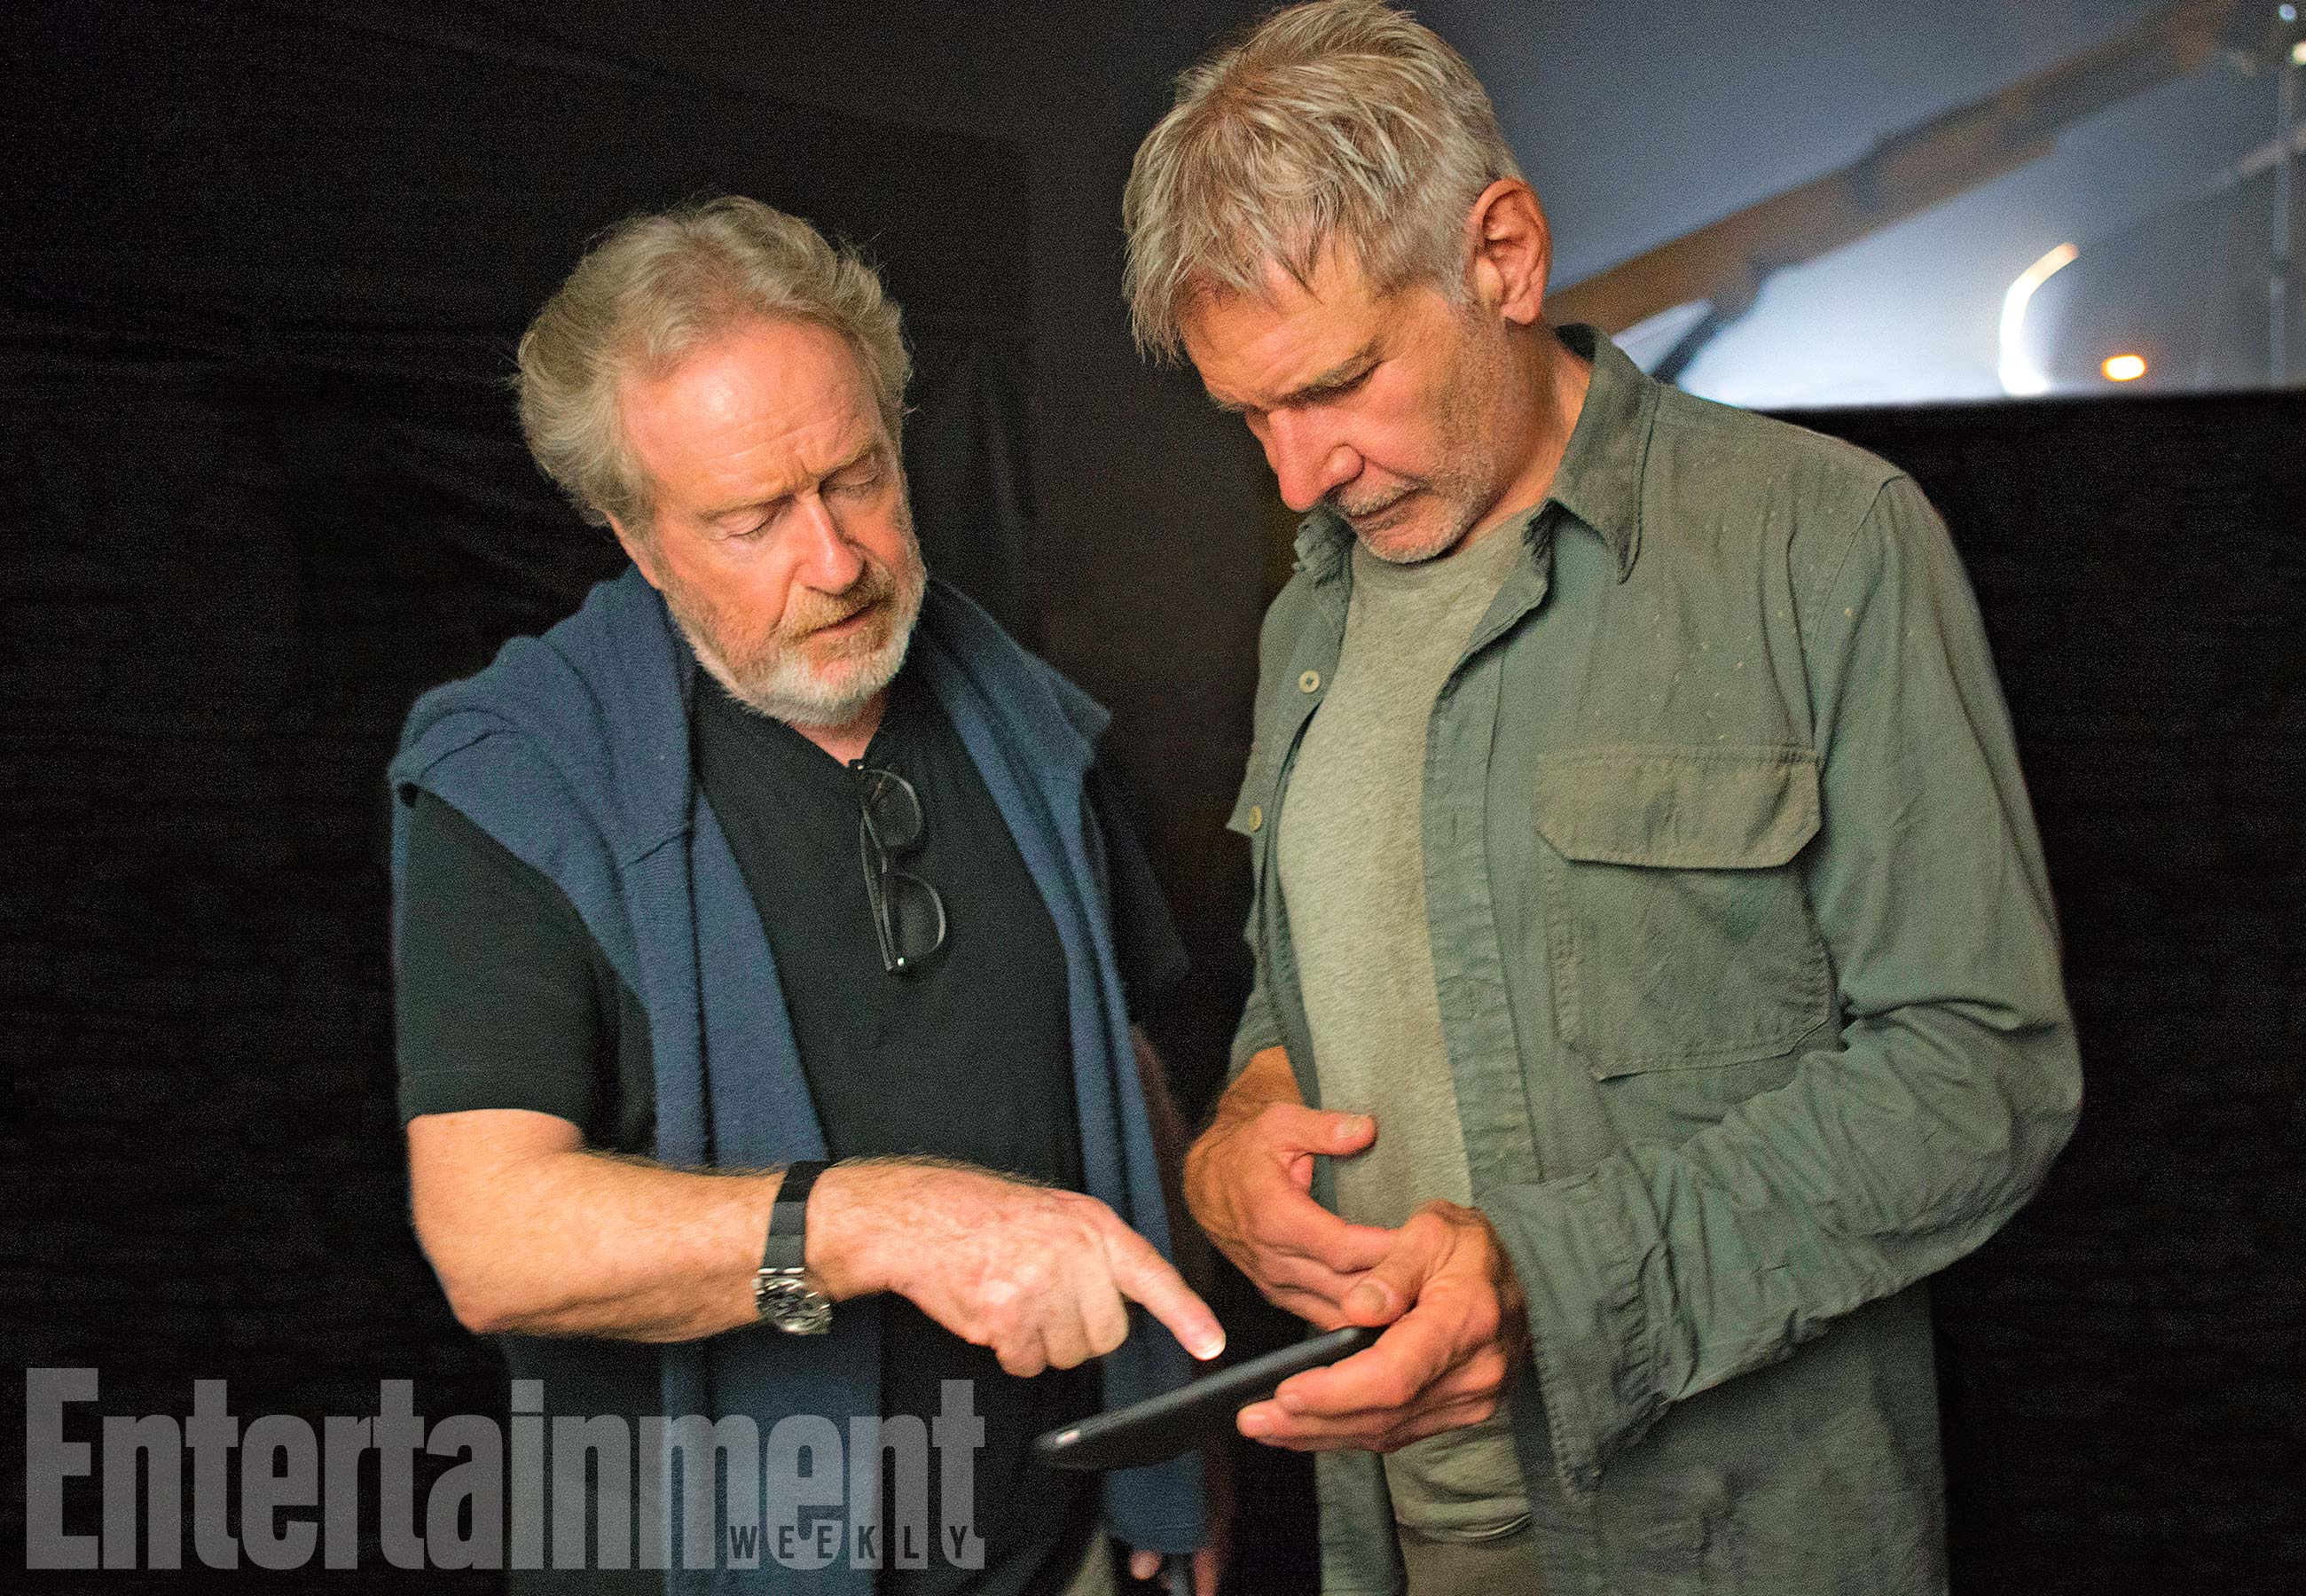 Blade Runner 2049 (2017) L-R: Ridley Scott and Harrison Ford on the set